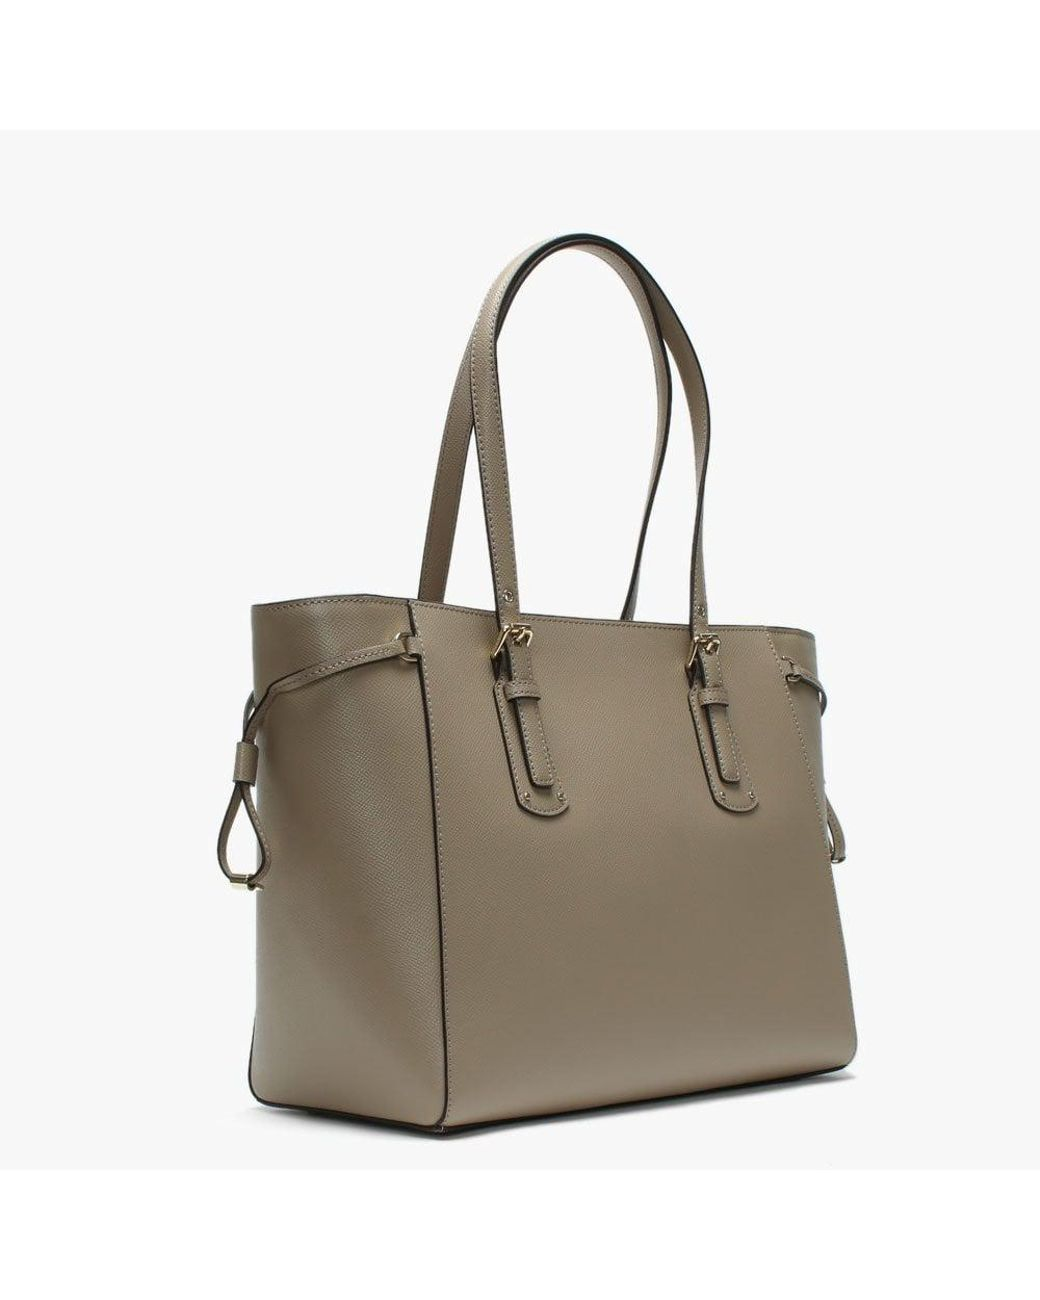 0945fc1e5f60 Michael Kors Voyager Truffle Saffiano Leather Tote Bag - Save 33% - Lyst